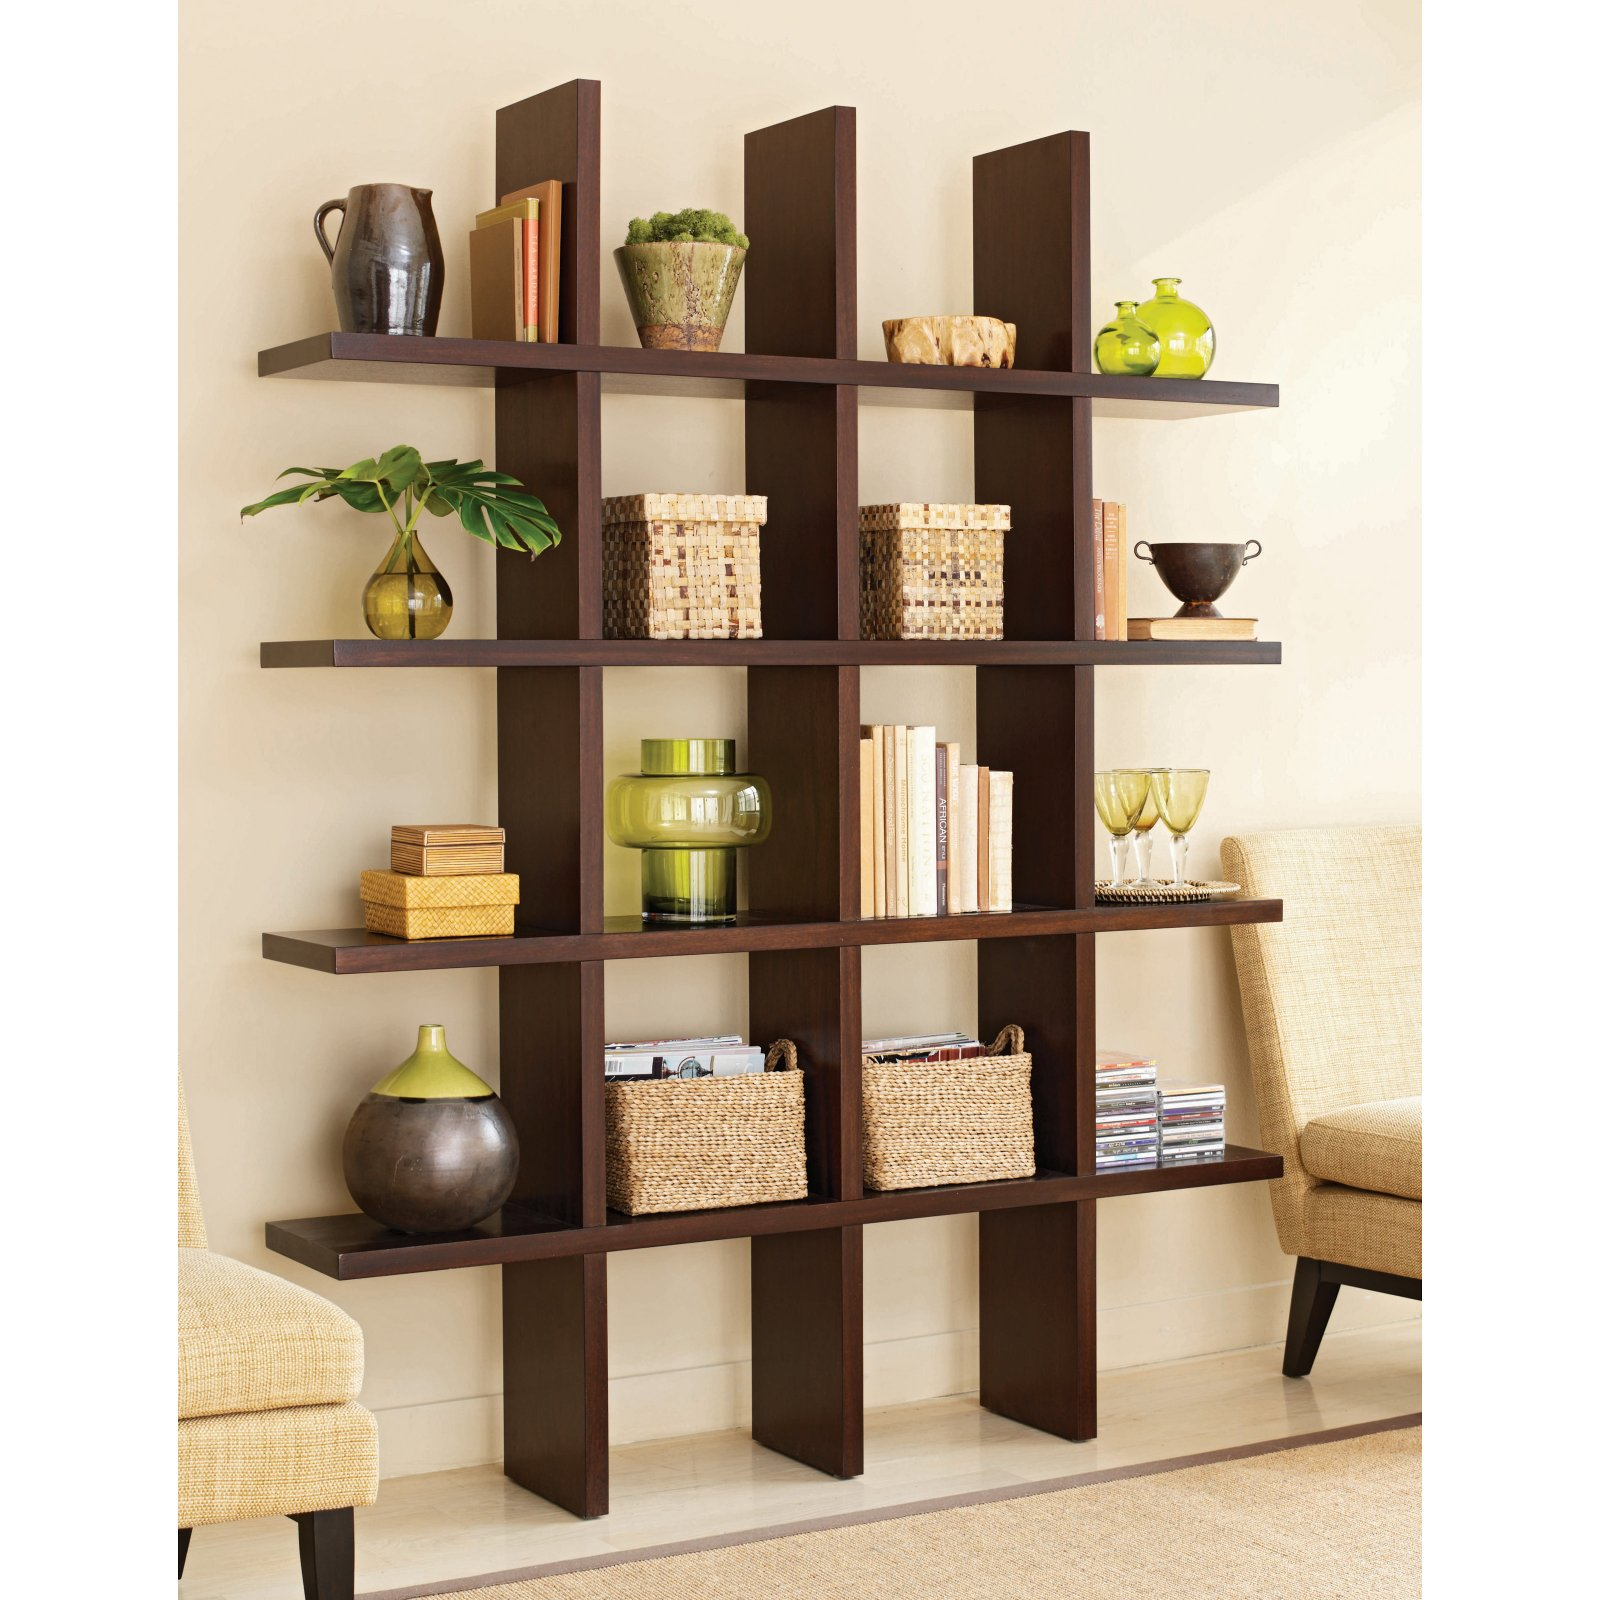 1600x1600px 10 Good Designer Bookshelves Picture in Furniture